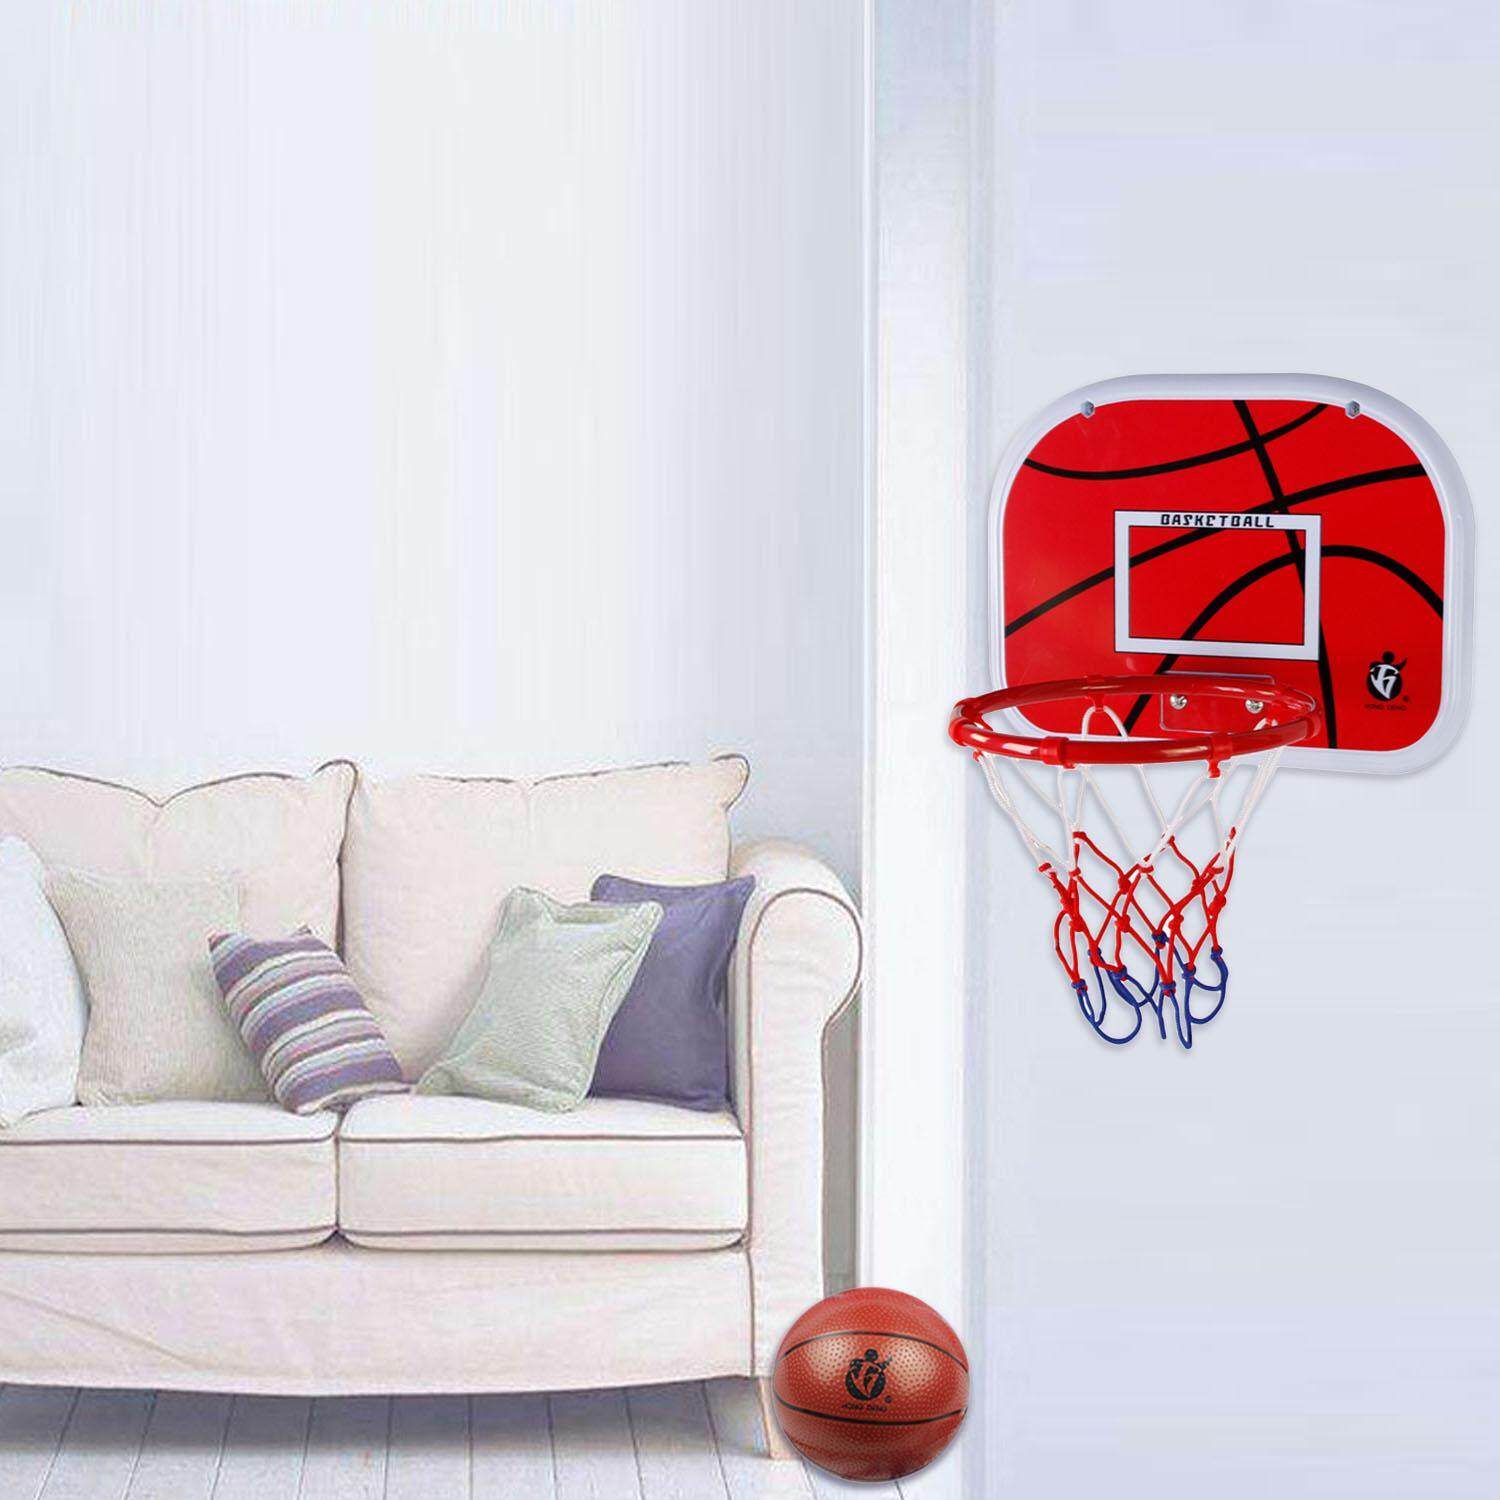 Mini Basketball Hoop With Air Pump Basketball Set For Home Office Sports Entertainment Exercise - Intl By Stoneky.